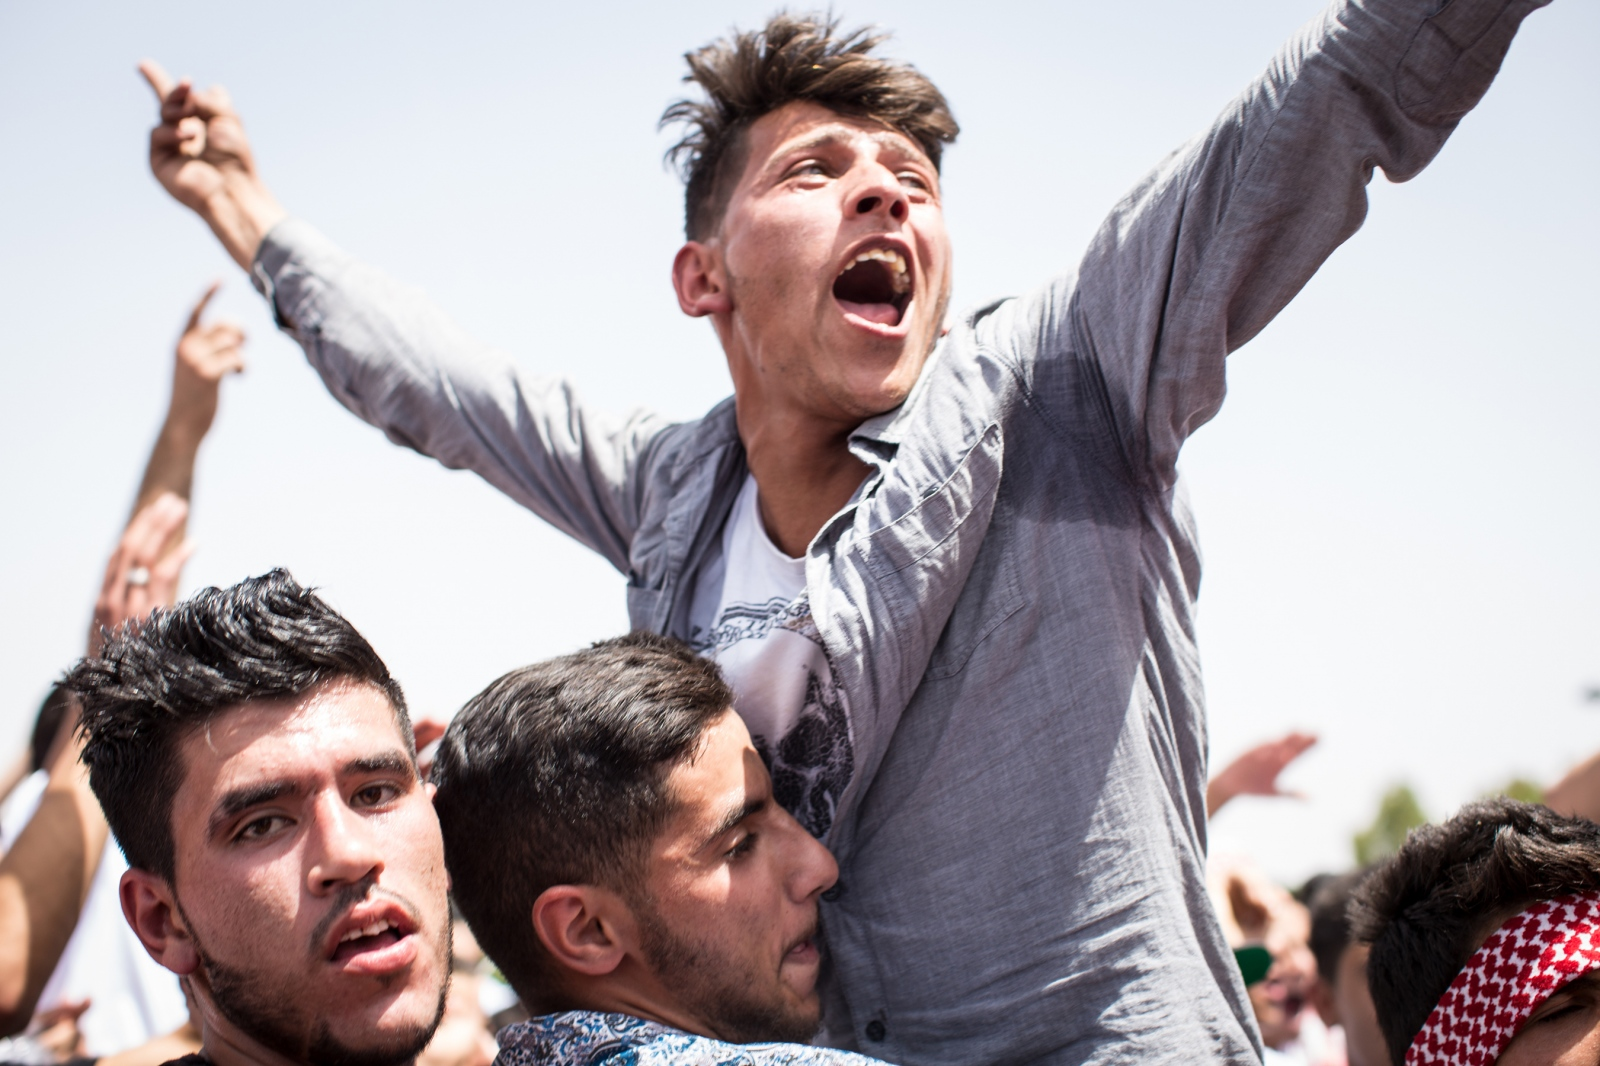 The crowd cheers as the Jordanian rock band Autostrad performs at a festival celebrating the 100th anniversary of the Great Arab Revolt in Amman, Jordan, on June 3, 2016.